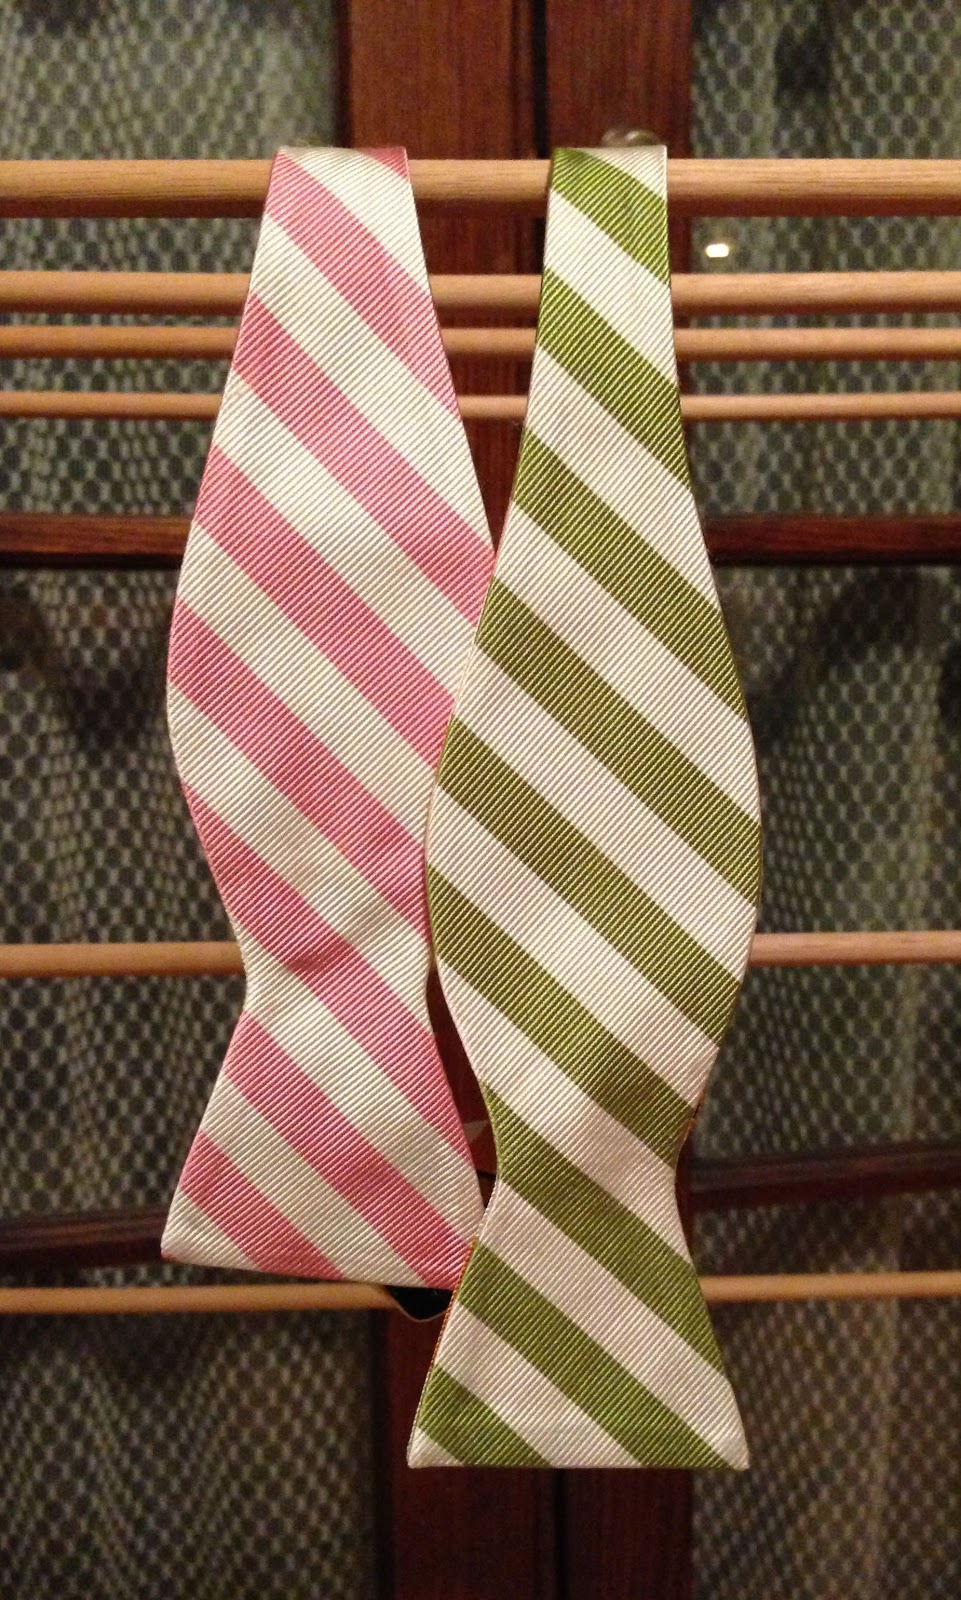 The Last Two Color Panels Of The Jos A Banks Tie Are A Pink And White  Striped Section And An Green And White Striped Section